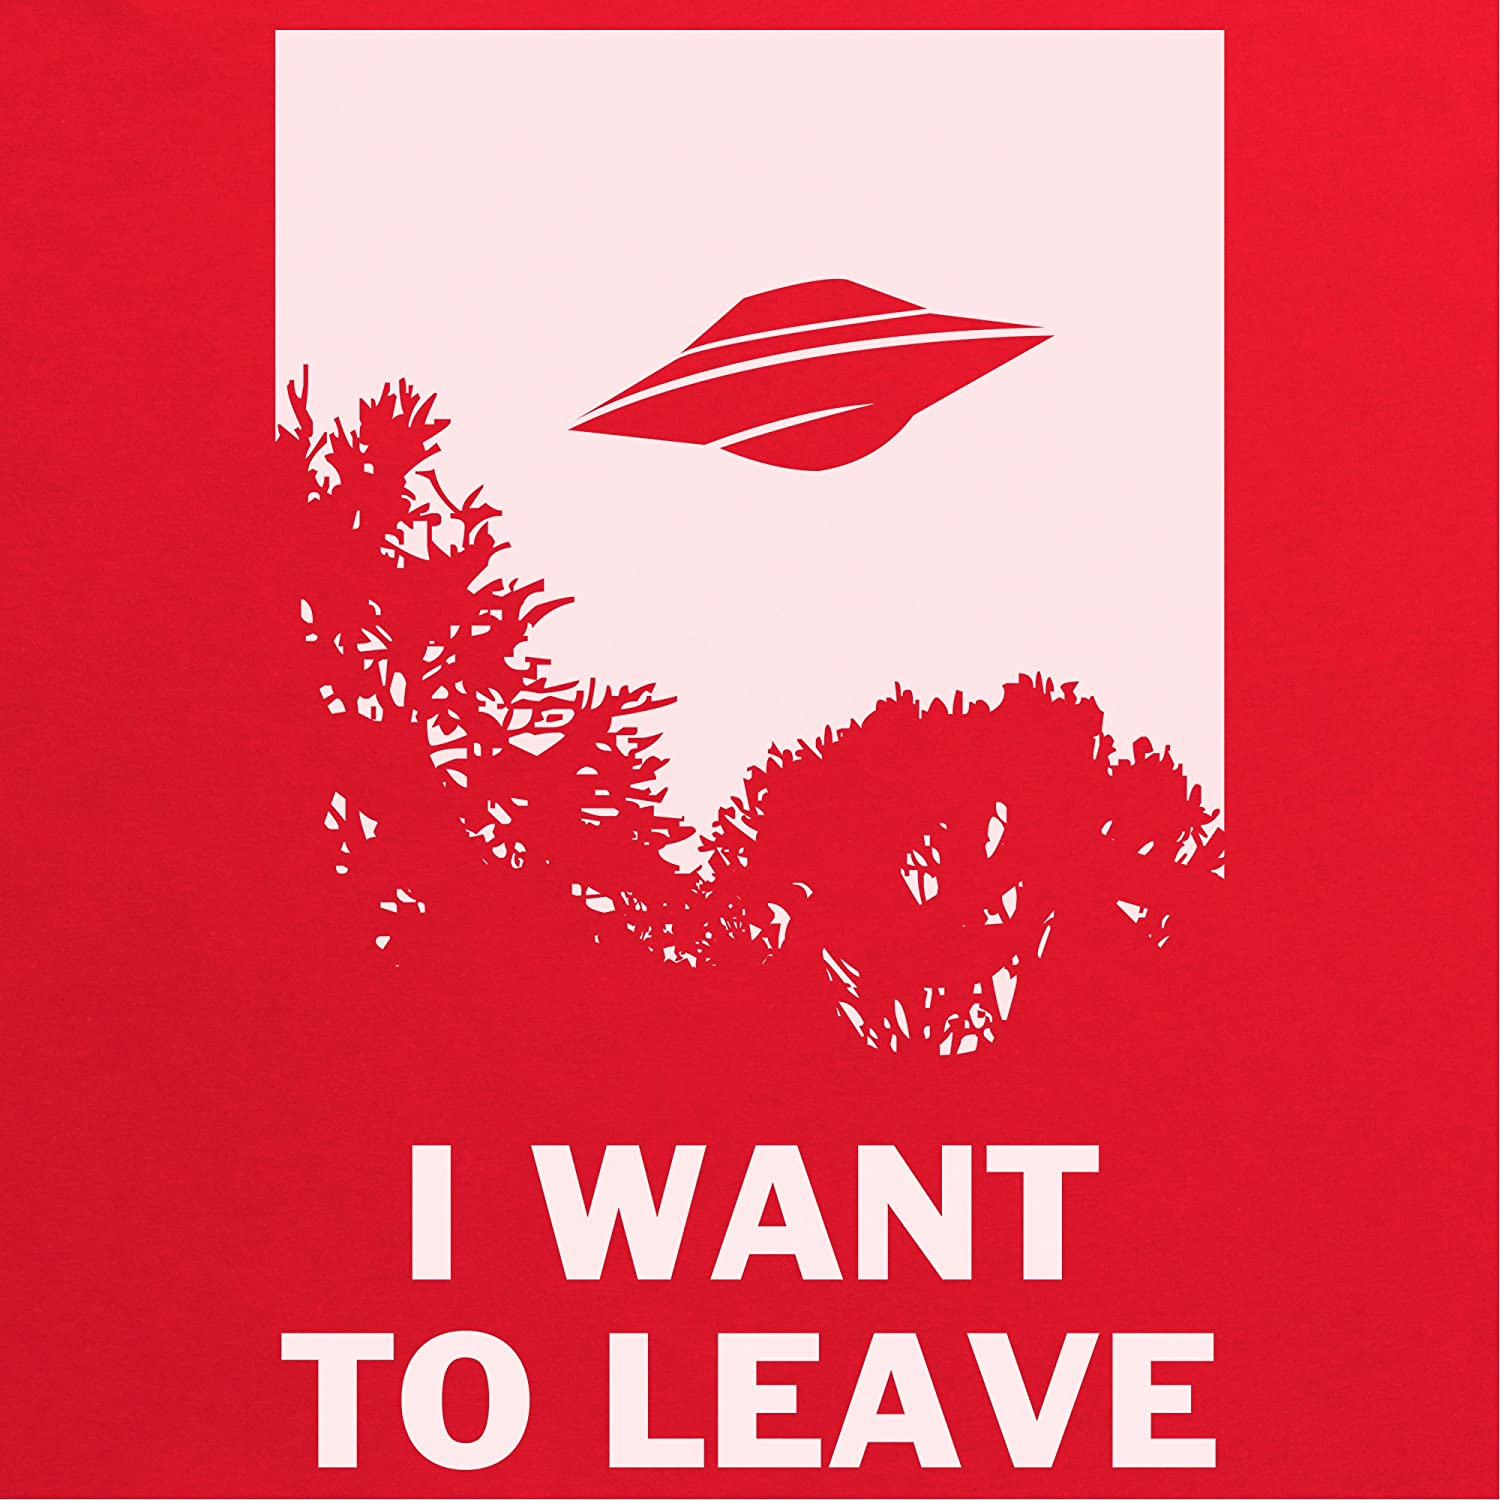 I Want To Leave Camiseta infantil, Para nios, Rojo, XS: Amazon.es: Ropa y accesorios